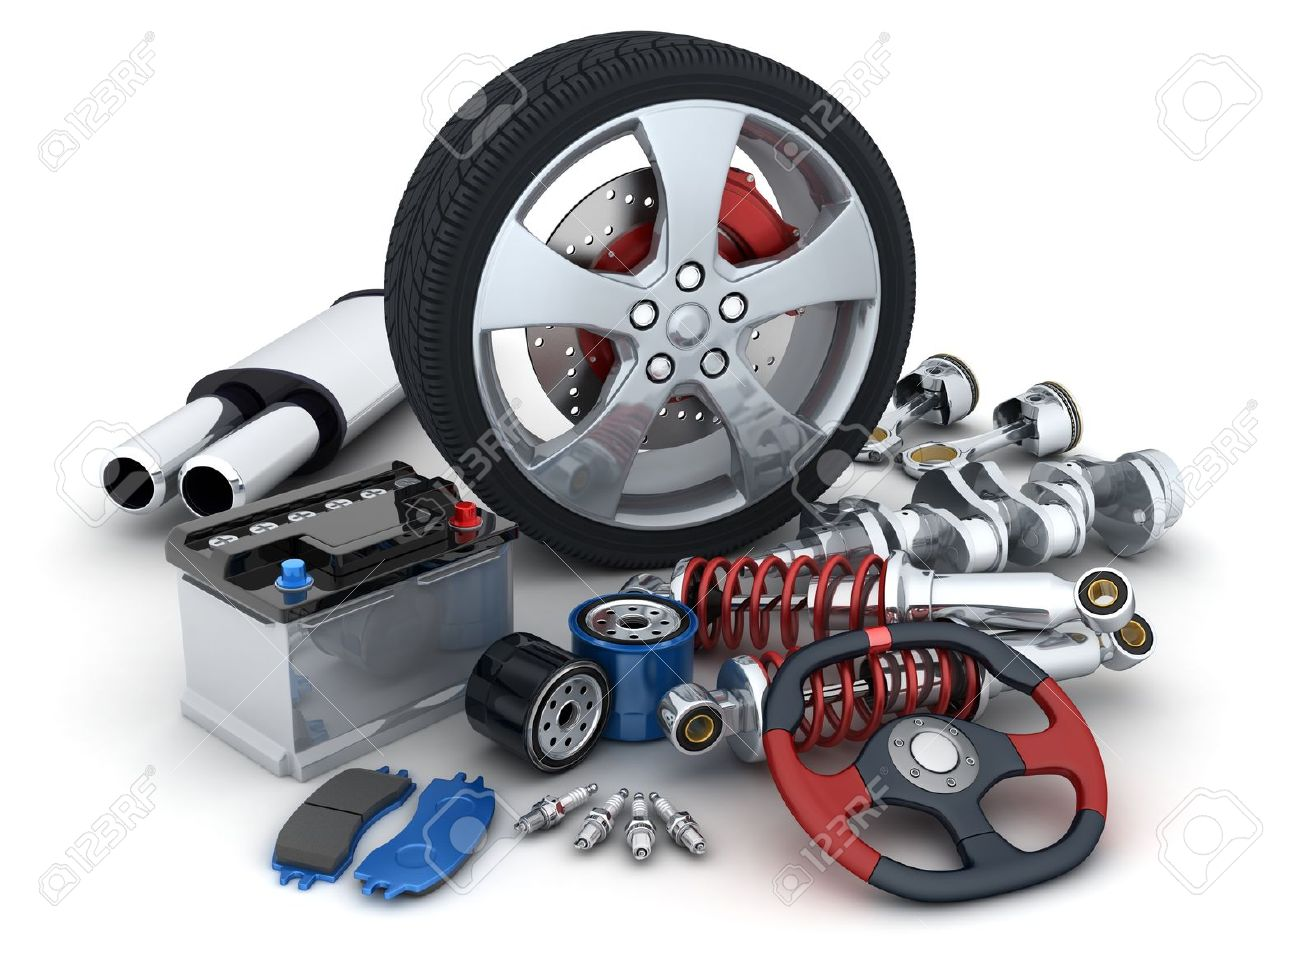 Many Auto Parts Done In 3d Stock Photo, Picture And Royalty Free ...